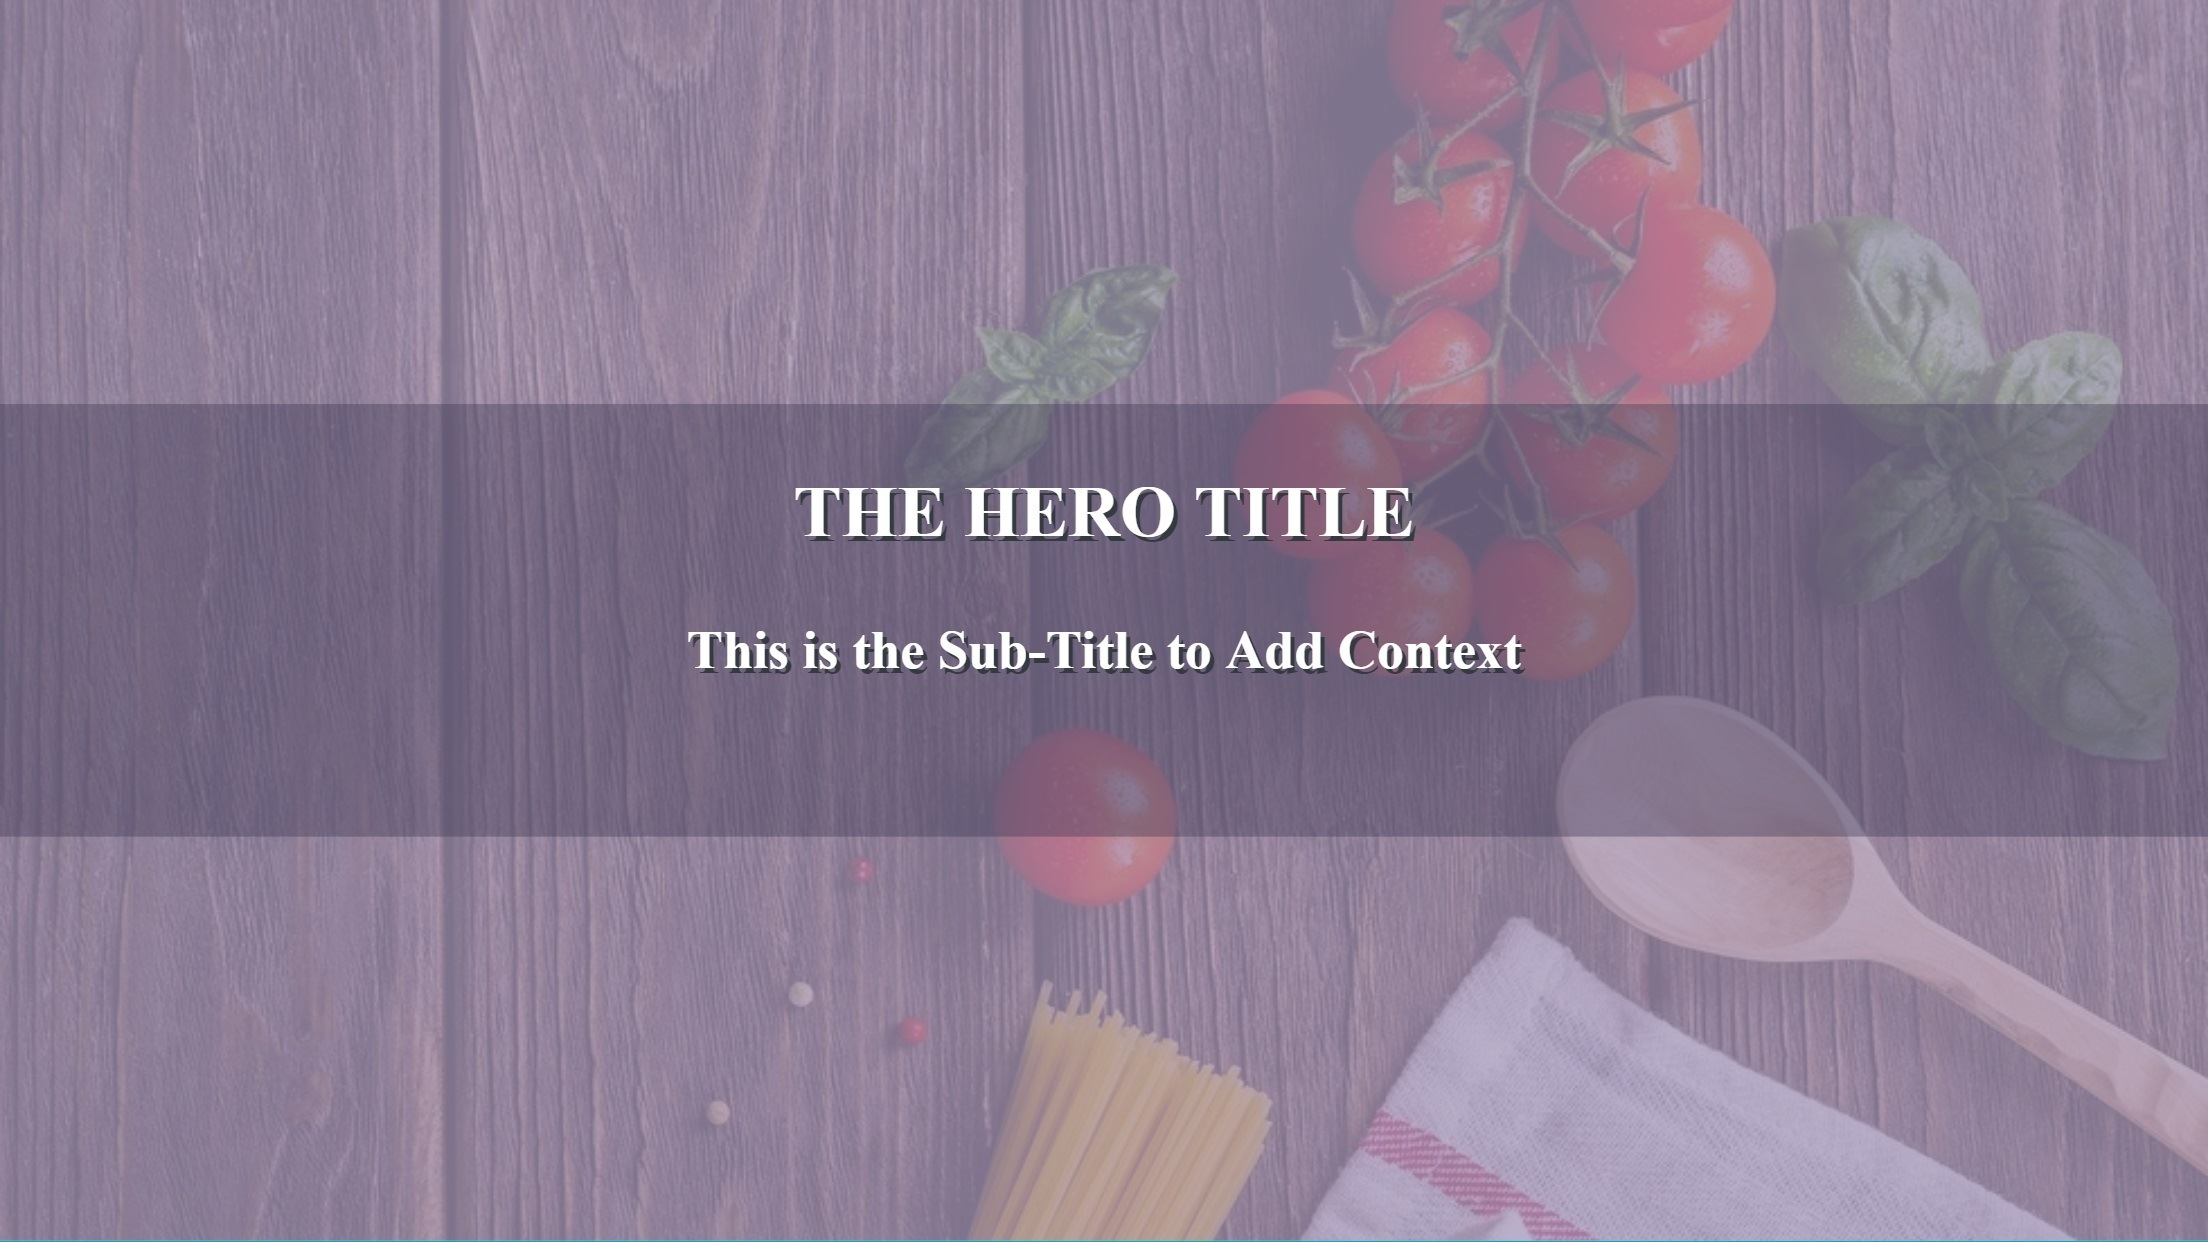 A Responsive Css Hero Background Image          With Opacity And Color     A Responsive Css Hero Background Image          With Opacity And Color Overlay  That Does Not Affect Text